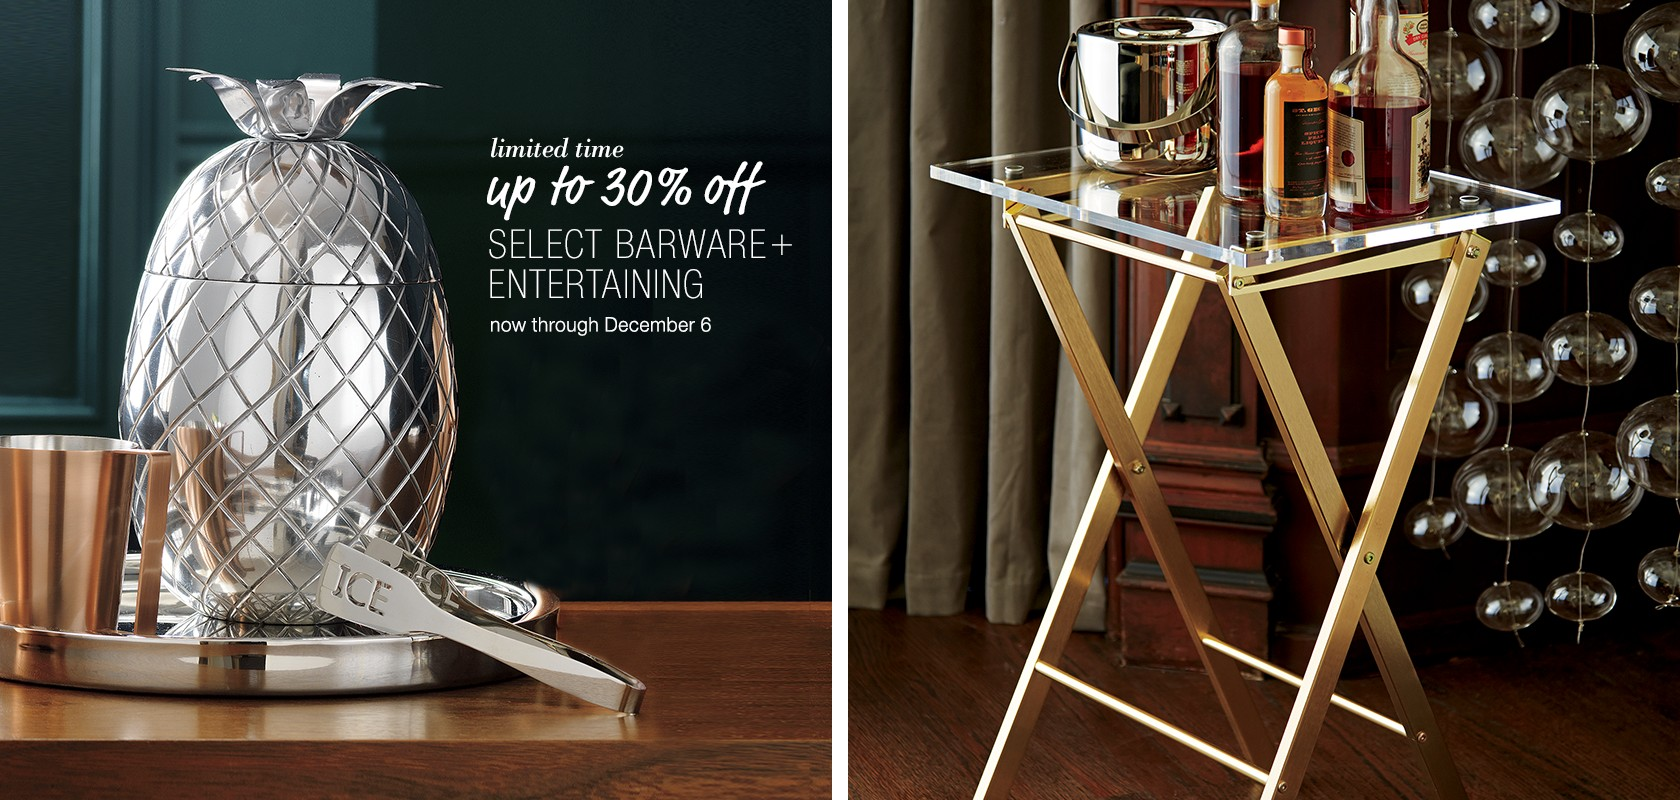 up to 30% off select barware and entertaining